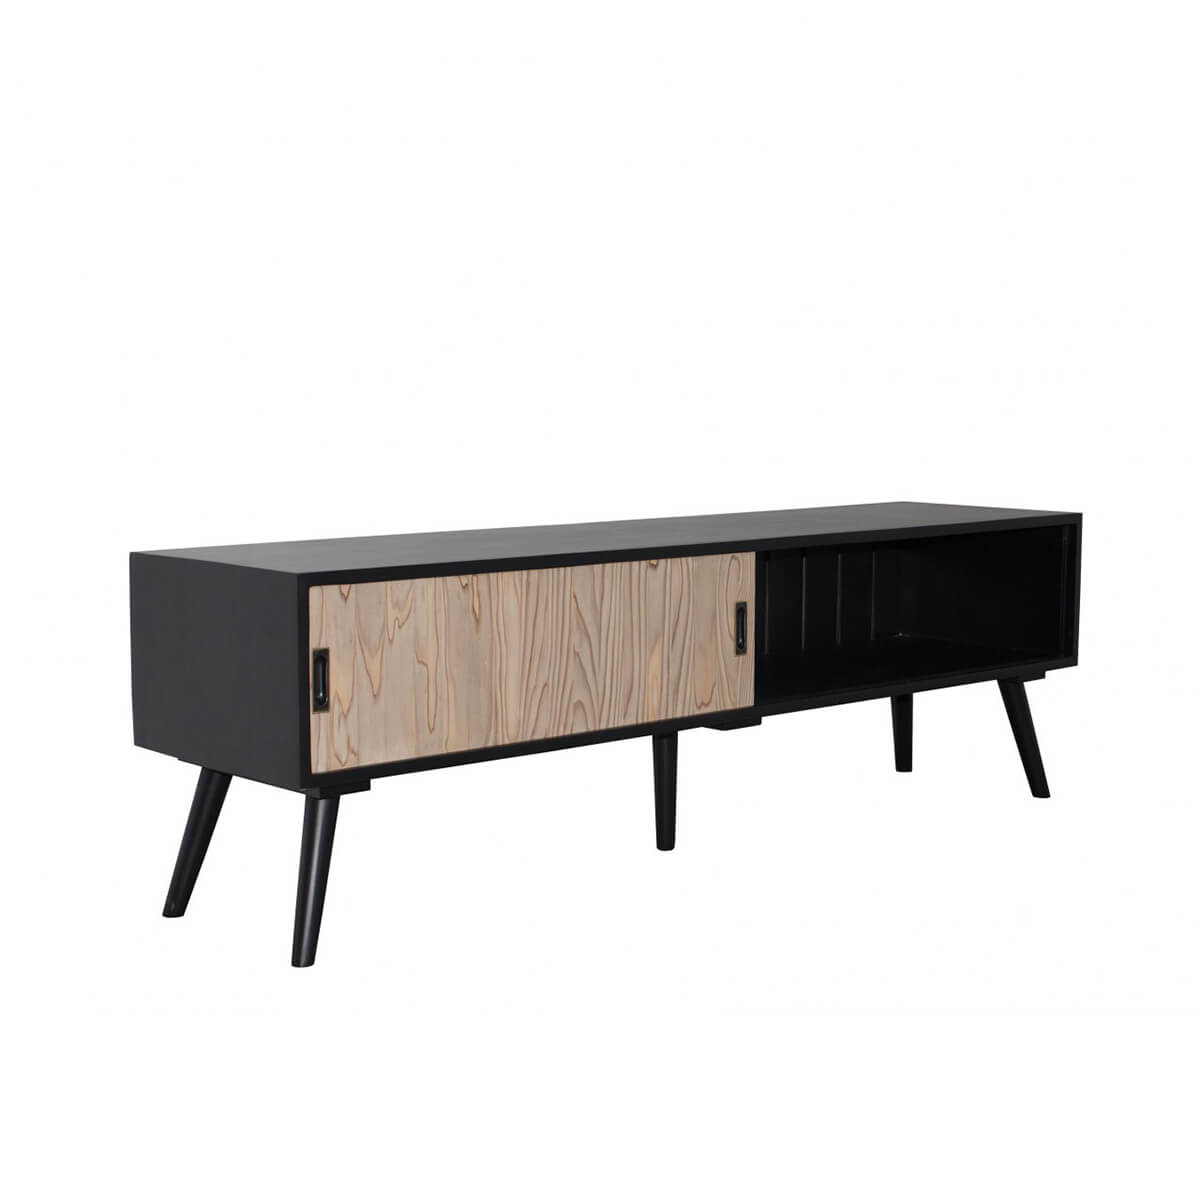 Albine-Best-Tv-Stand-In-Dubai-CozyHome-Dubai